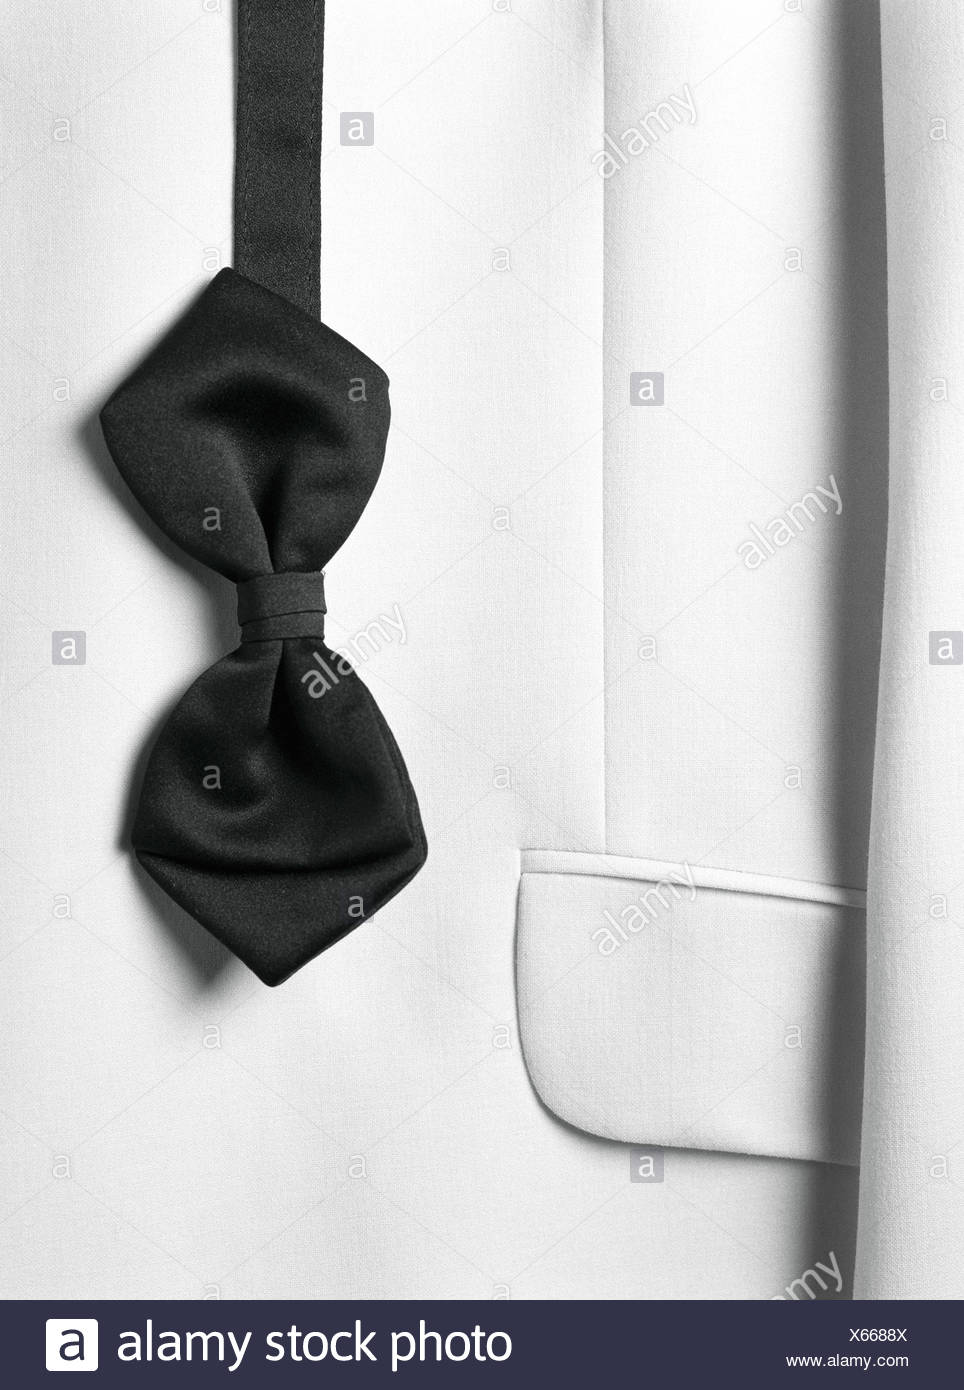 Bow tie and suit jacket, close-up Stock Photo